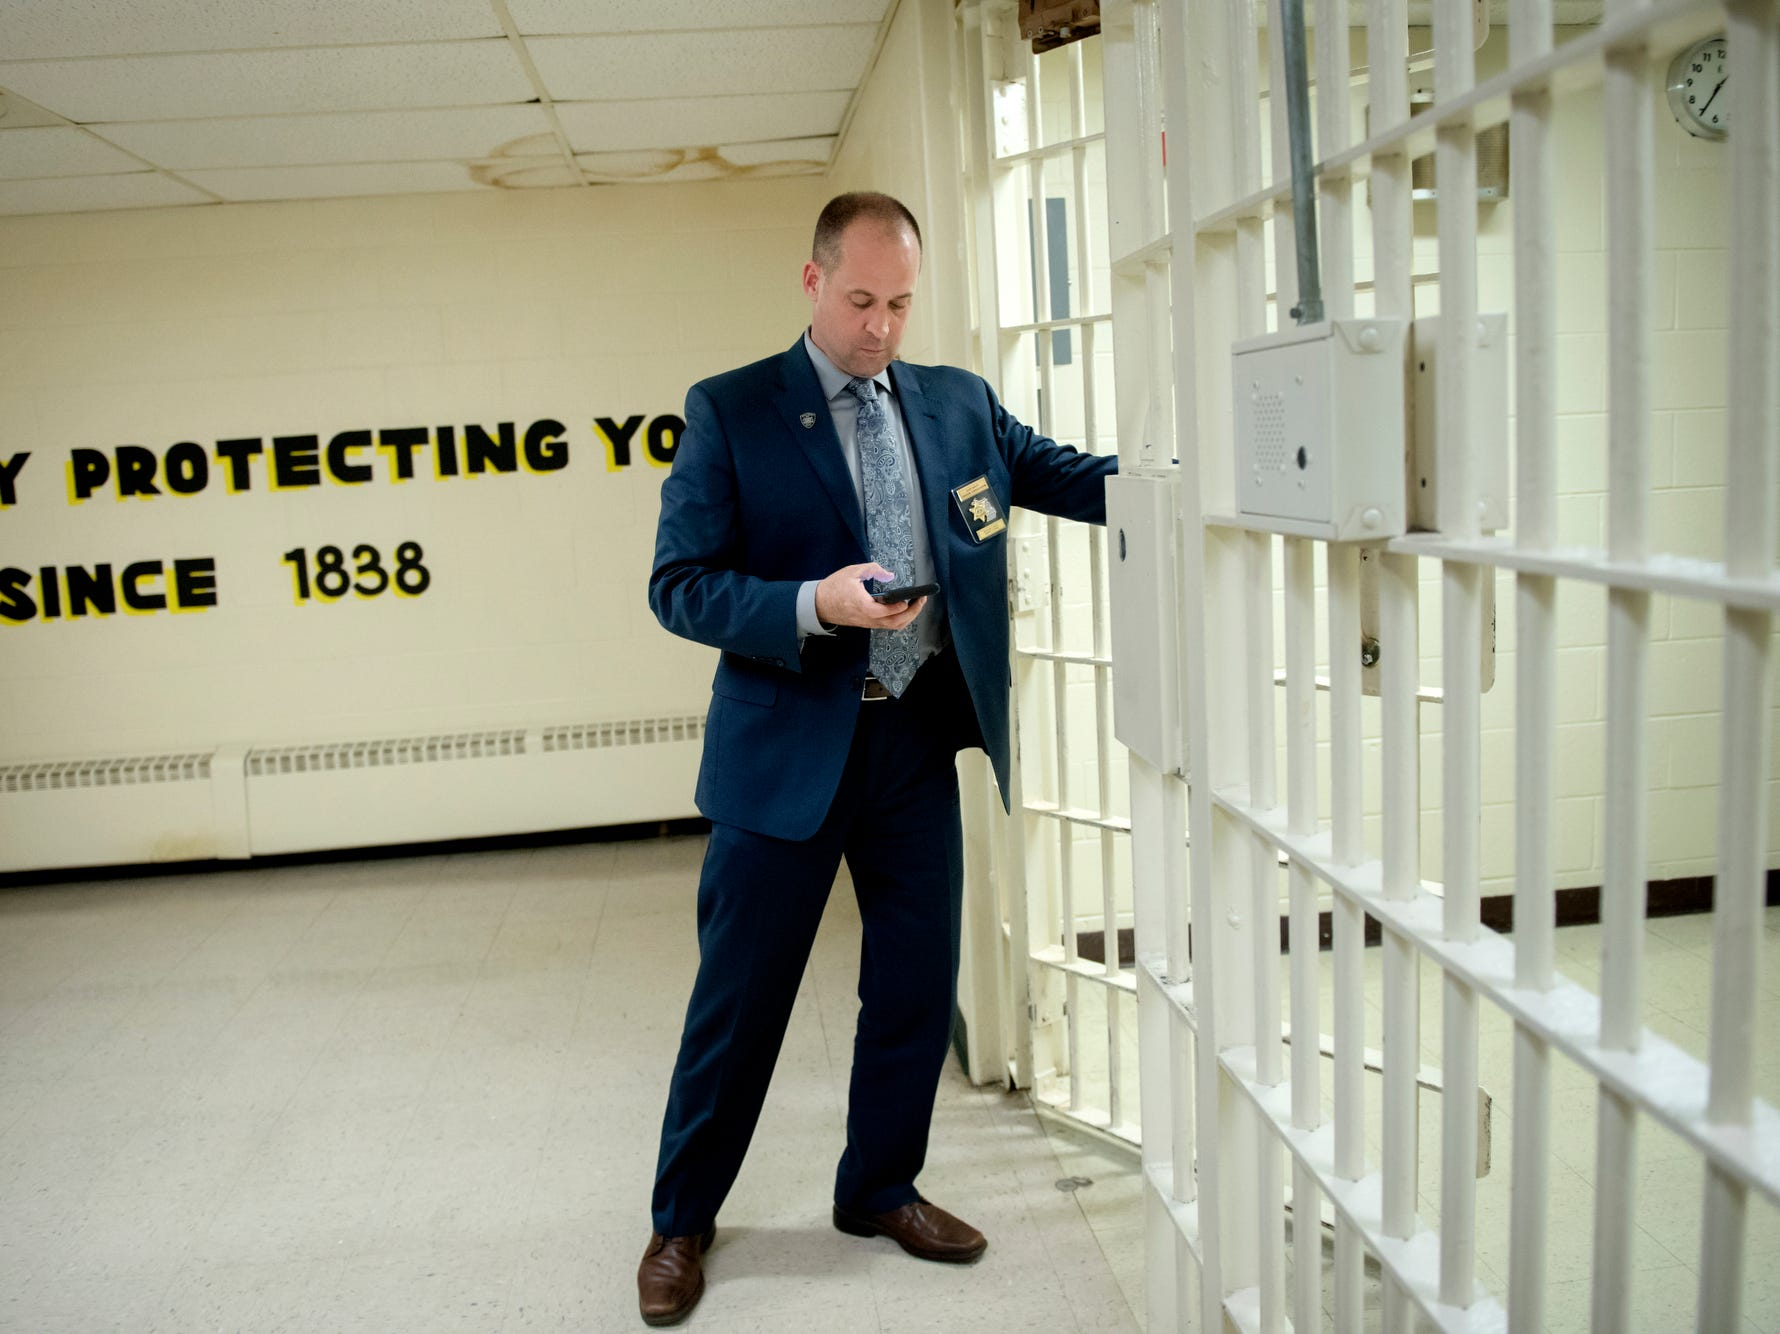 Ingham County Sheriff Chief Deputy Jason Ferguson opens a door during a tour of the Ingham County Jail on Tuesday, April 24, 2018, in Mason.